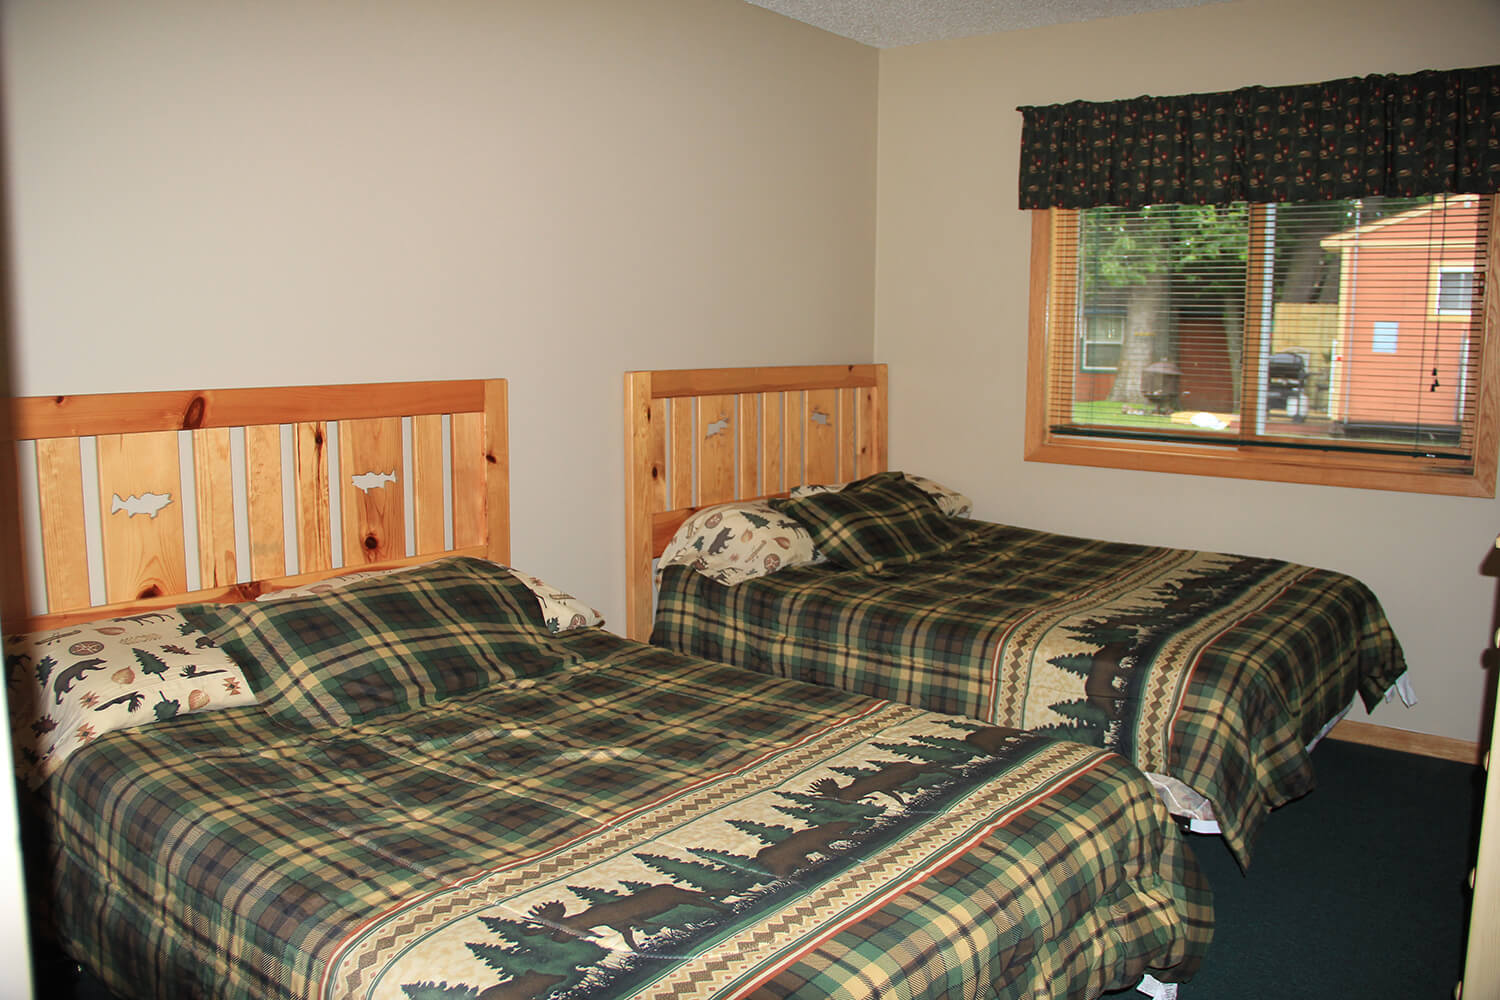 4 Bedroom Cabin 28 Images Bedroom 3 Upstairs King Bed